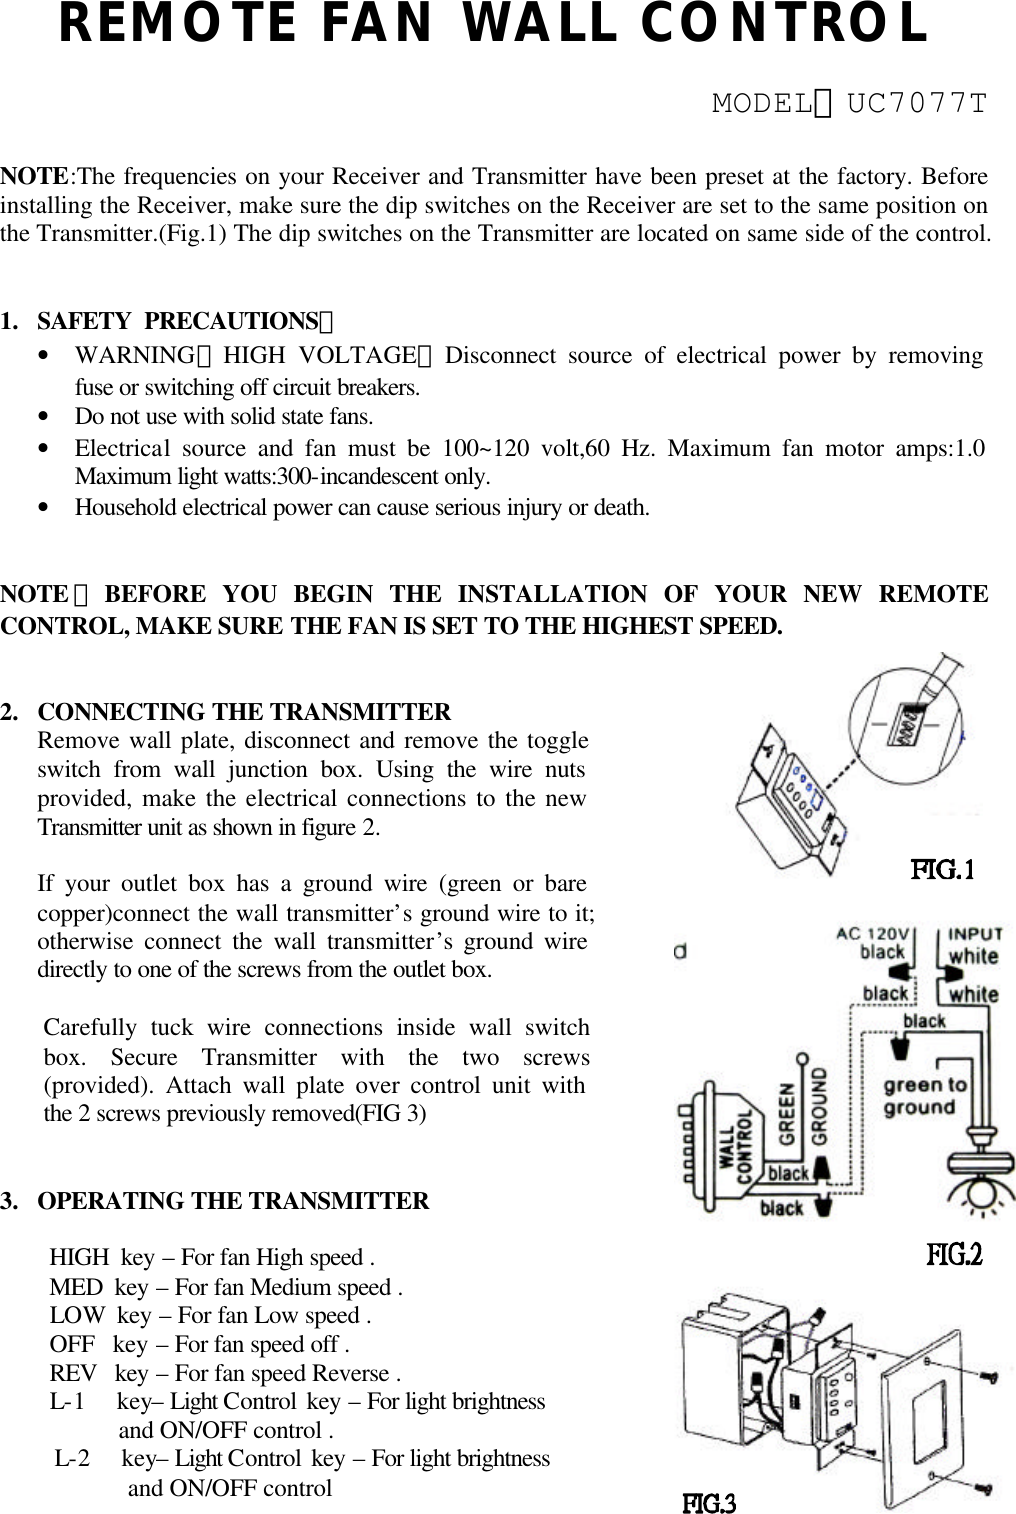 Rhine Electronics Co 7077t Transmitter Of Remote Control User Manual The Wire Into Circuit Breaker And Remove See Figure 2 Fan Wall Modeluc7077t Notethe Frequencies On Your Receiver